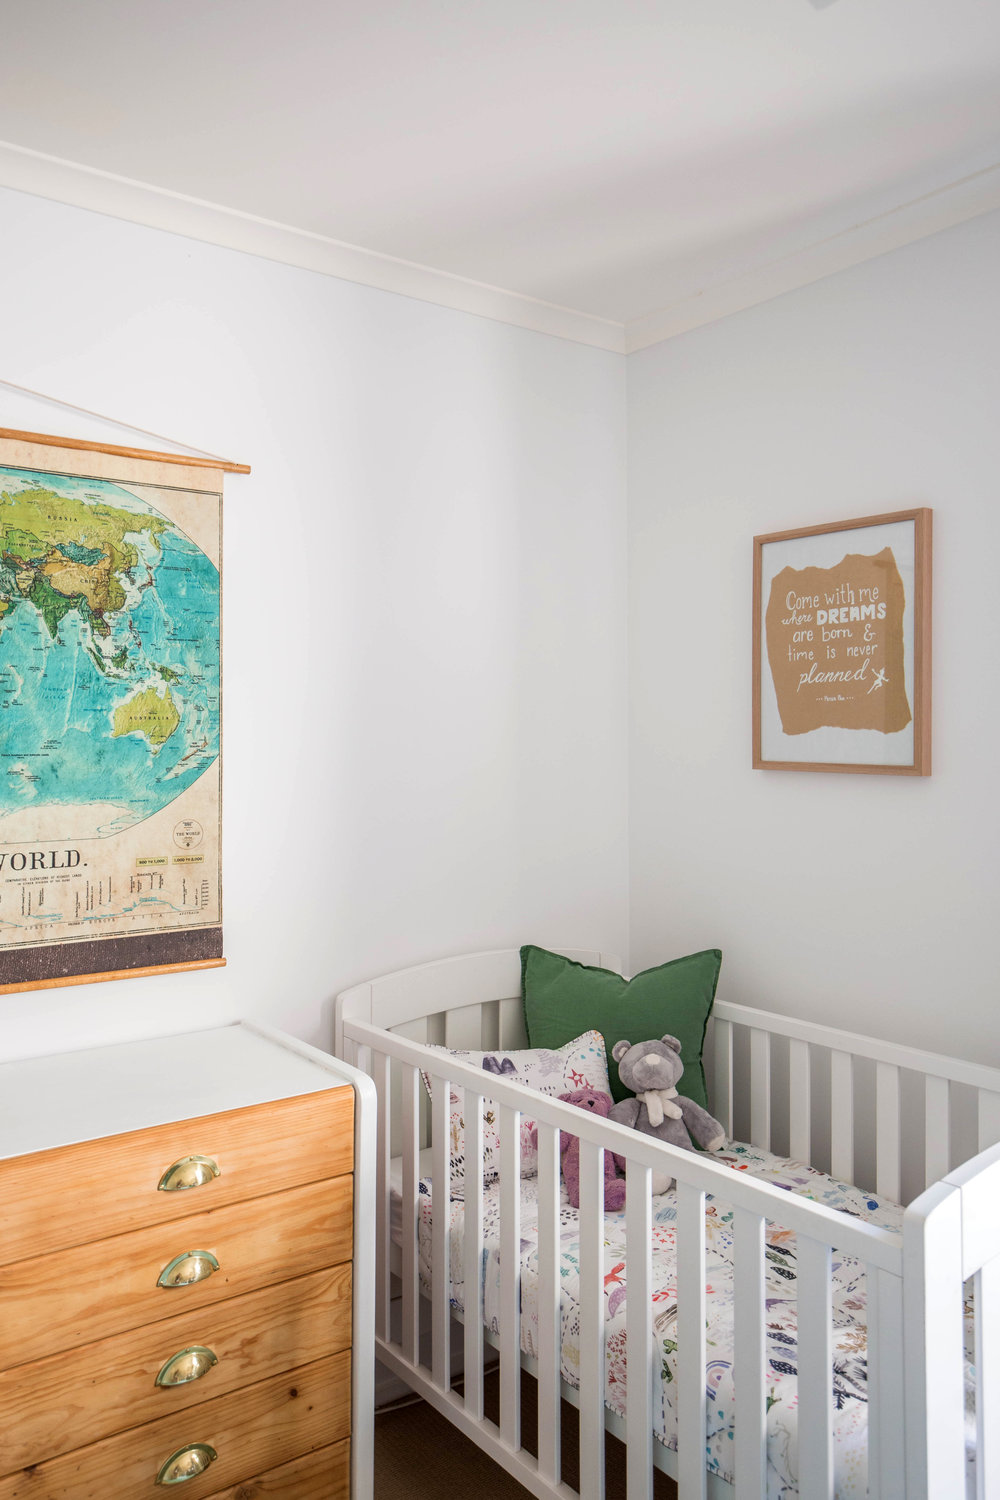 Tanika's Baby Room - Nursery - Interior Design - Tanika Blair Stying & Photography - IMG_8900.jpg